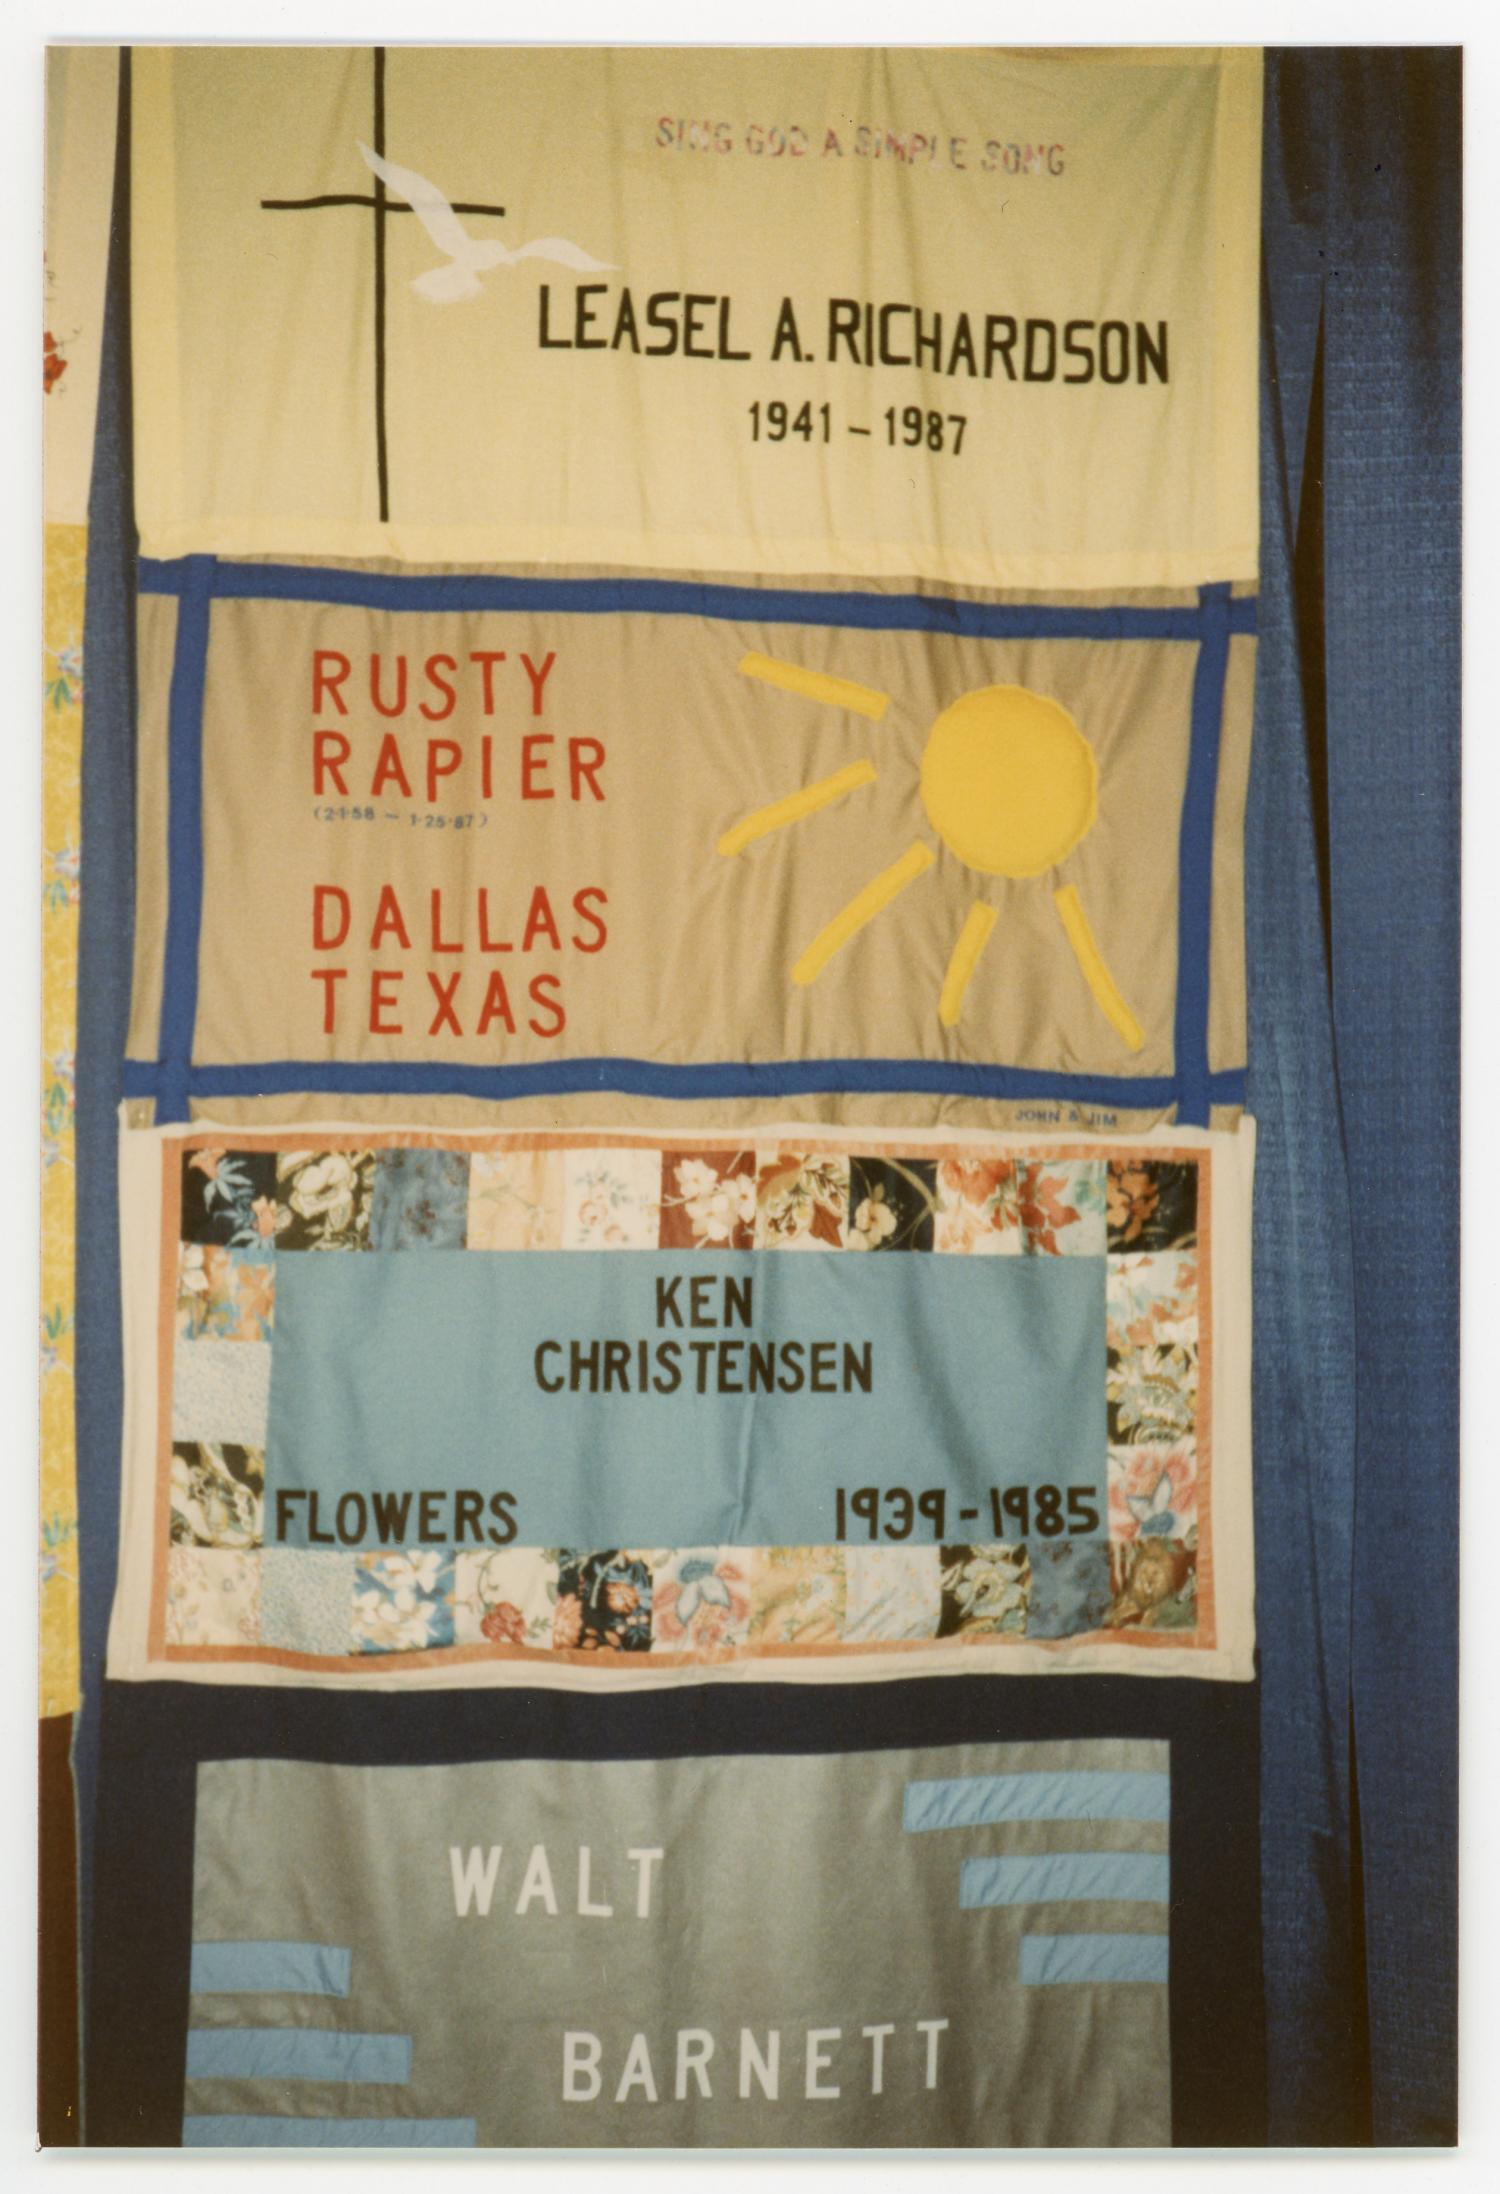 [Quilt Section with Dedications to Leasel A. Richardson, Rusty Rapier, Ken Christensen, and Walt Barnett], Photograph of a section of the AIDS memorial quilt with panels dedicated to Leasel A. Richardson, Rusty Rapier, Ken Christensen, and Walt Barnett.,